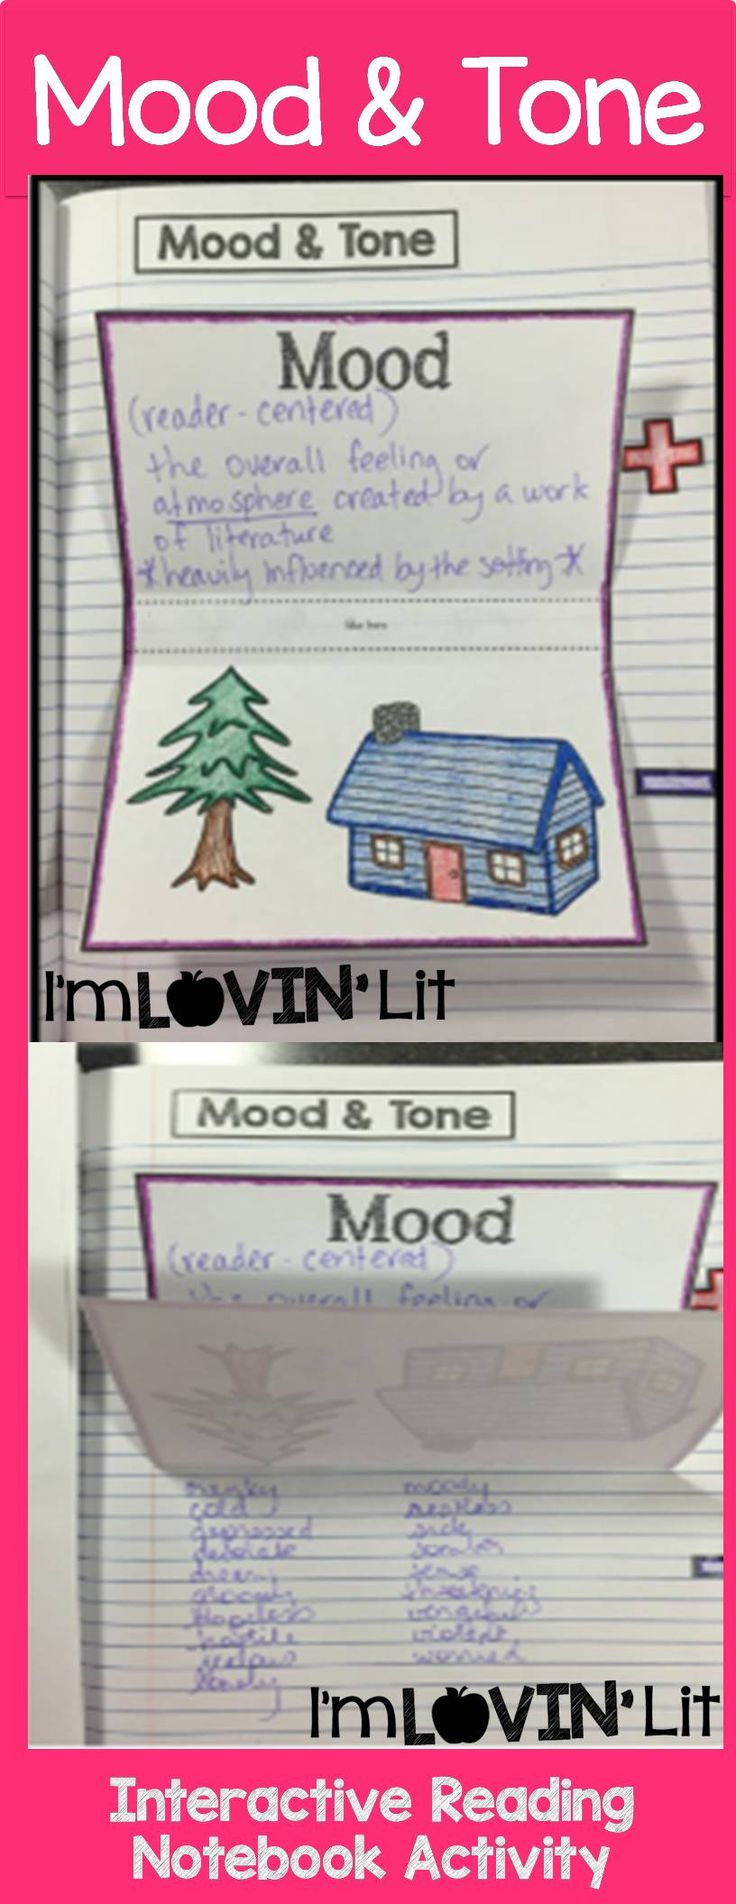 Mood and Tone Foldable, Mood and Tone Interactive Notebook Activity by Lovin' Lit from the ALL NEW Interactive Reading Literature Notebooks, Part 2